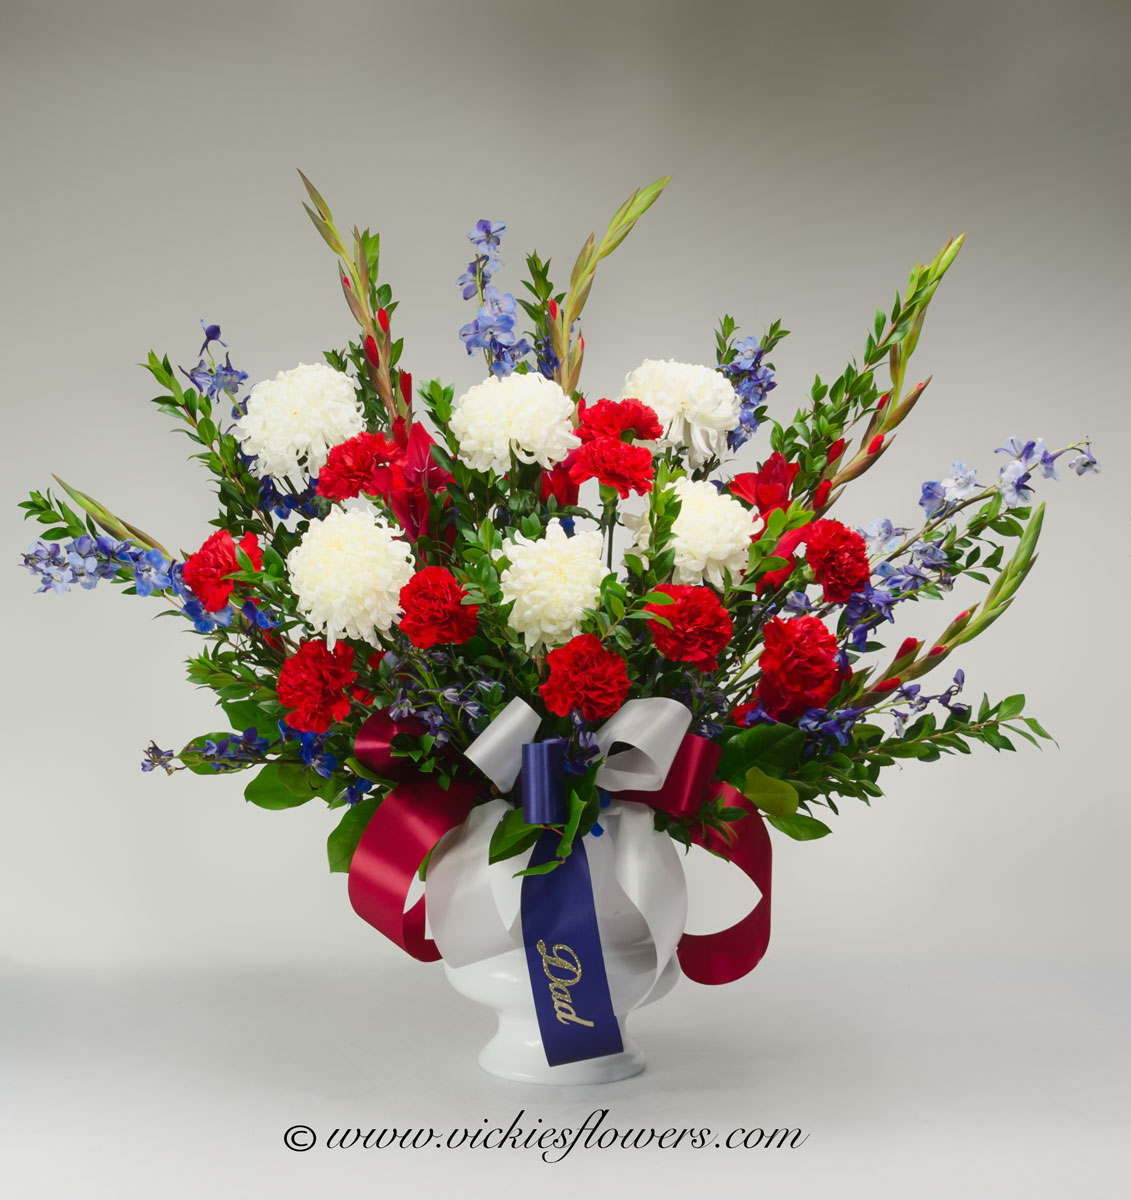 Funeral sympathy flowers archives vickies flowers brighton co funeral sympathy flowers 042 165 plus tax and delivery patriotic memorial flowers with izmirmasajfo